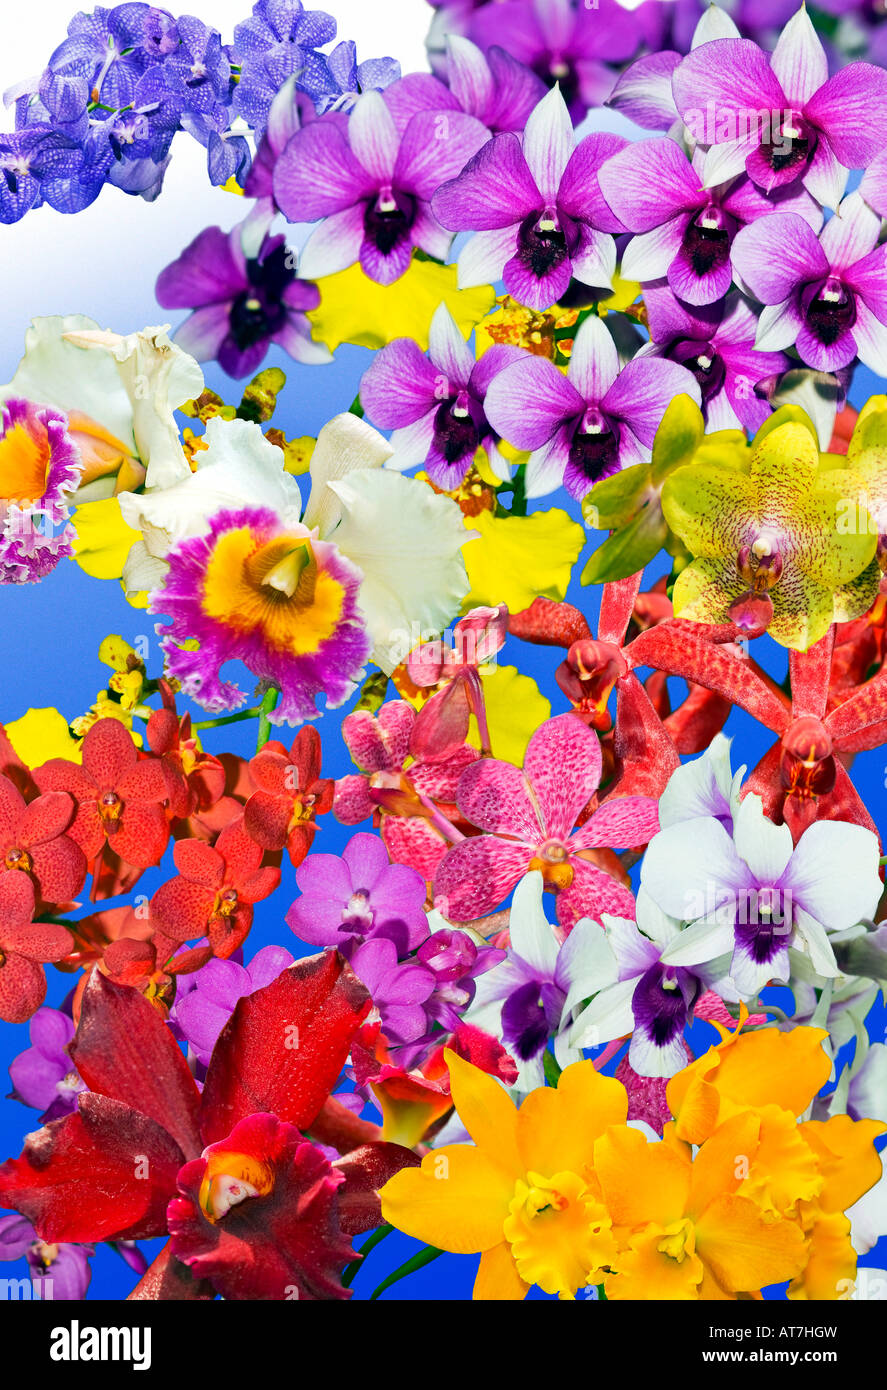 Stock Photo   Mixed ORCHIDS Plants Cattleya Orchid Orchidgarden Orchid  Garden Red Pink Yellow Green Blue On Plain Blue Background Art Work